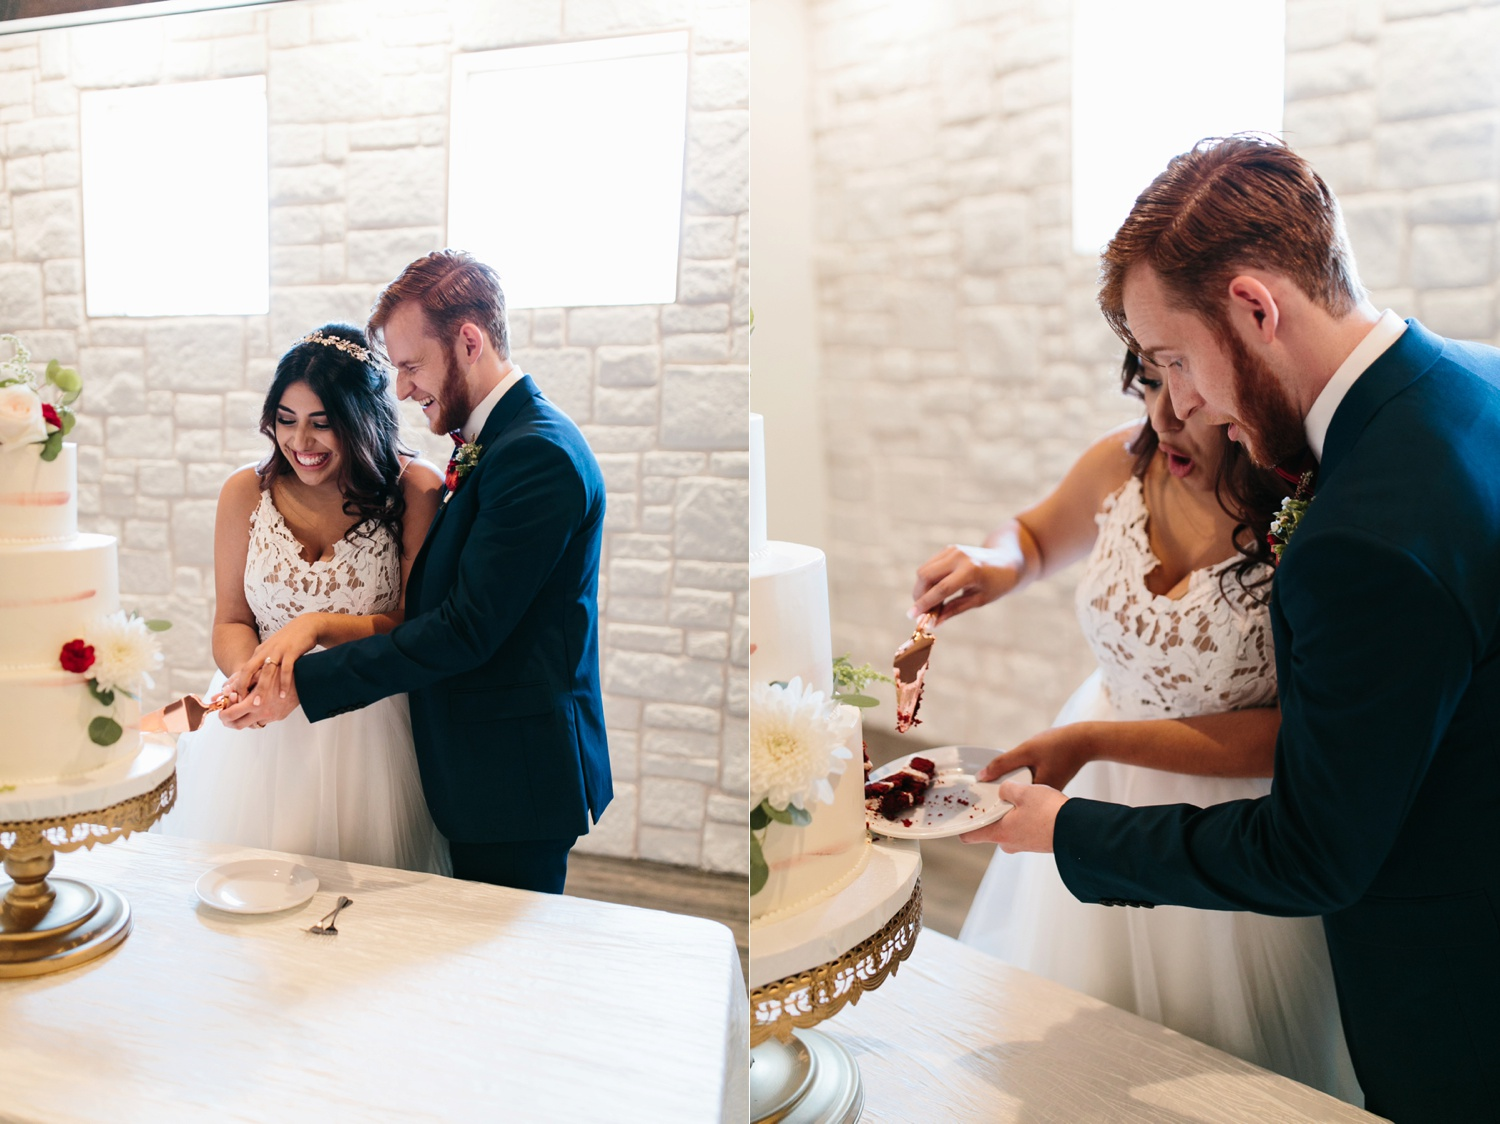 Grant + Lysette | a vibrant, deep burgundy and navy, and mixed metals wedding at Hidden Pines Chapel by North Texas Wedding Photographer Rachel Meagan Photography 147